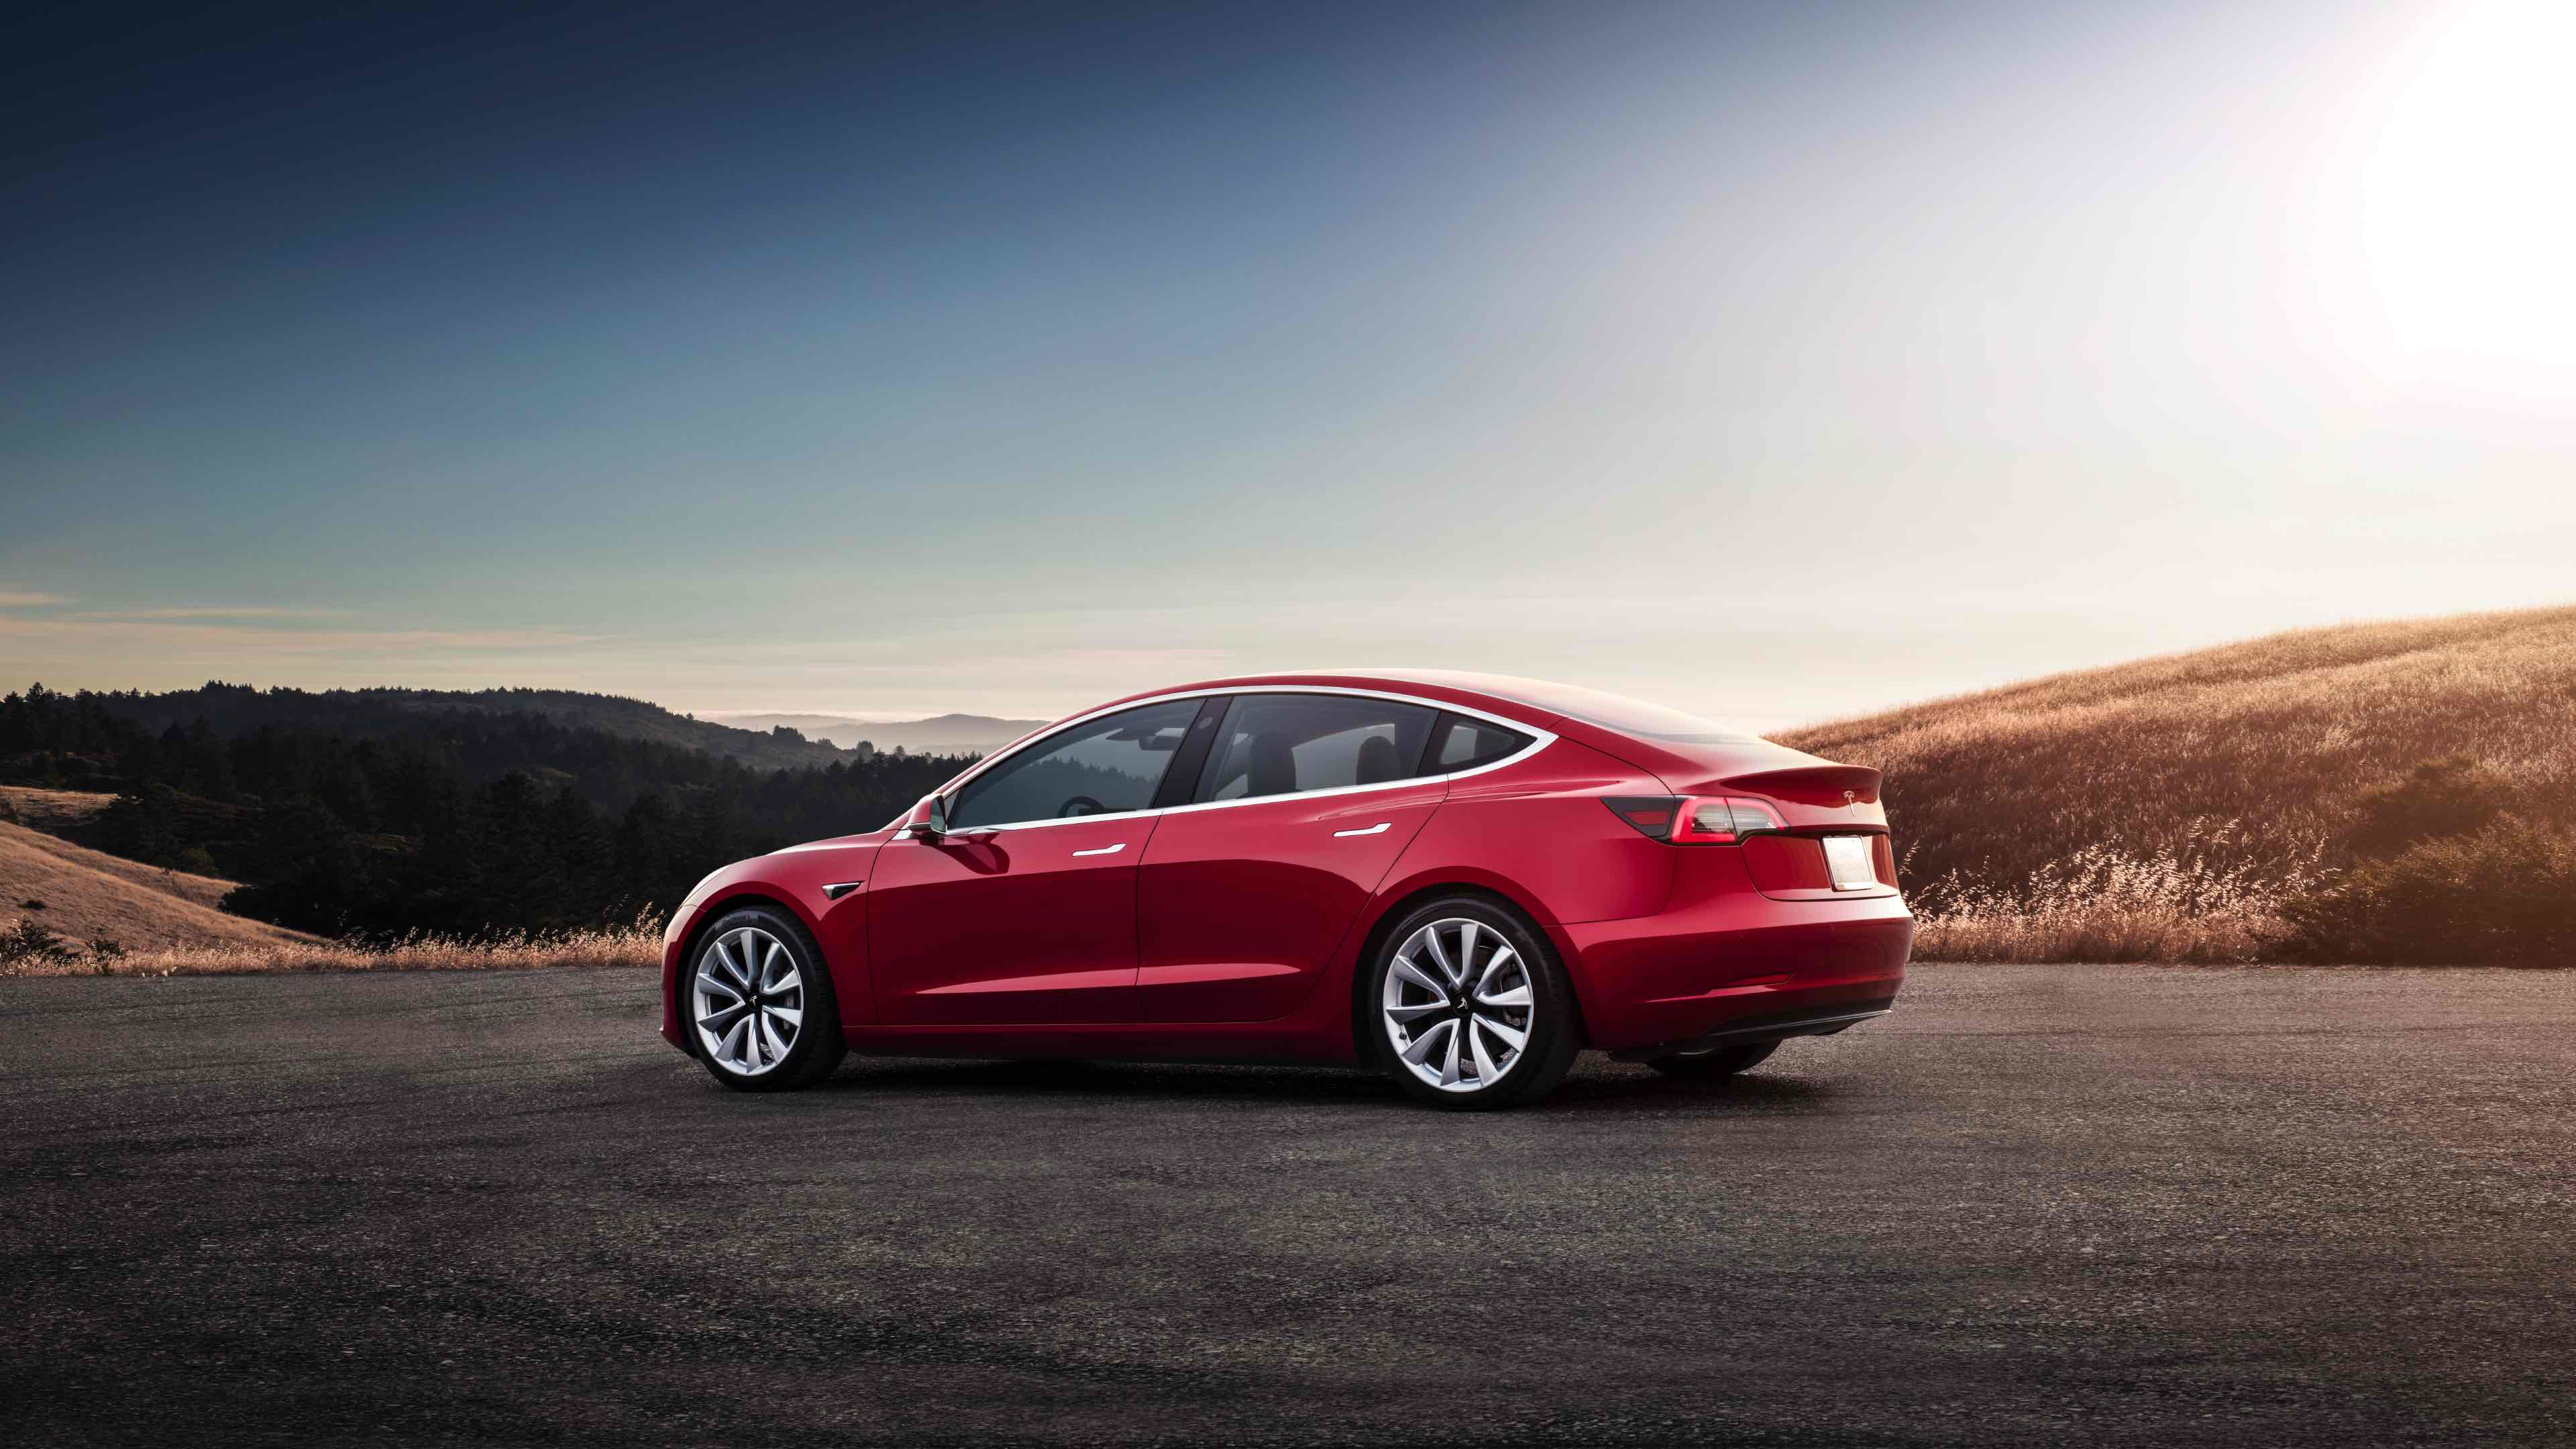 Tesla Model 3 - Red Rear Sunset